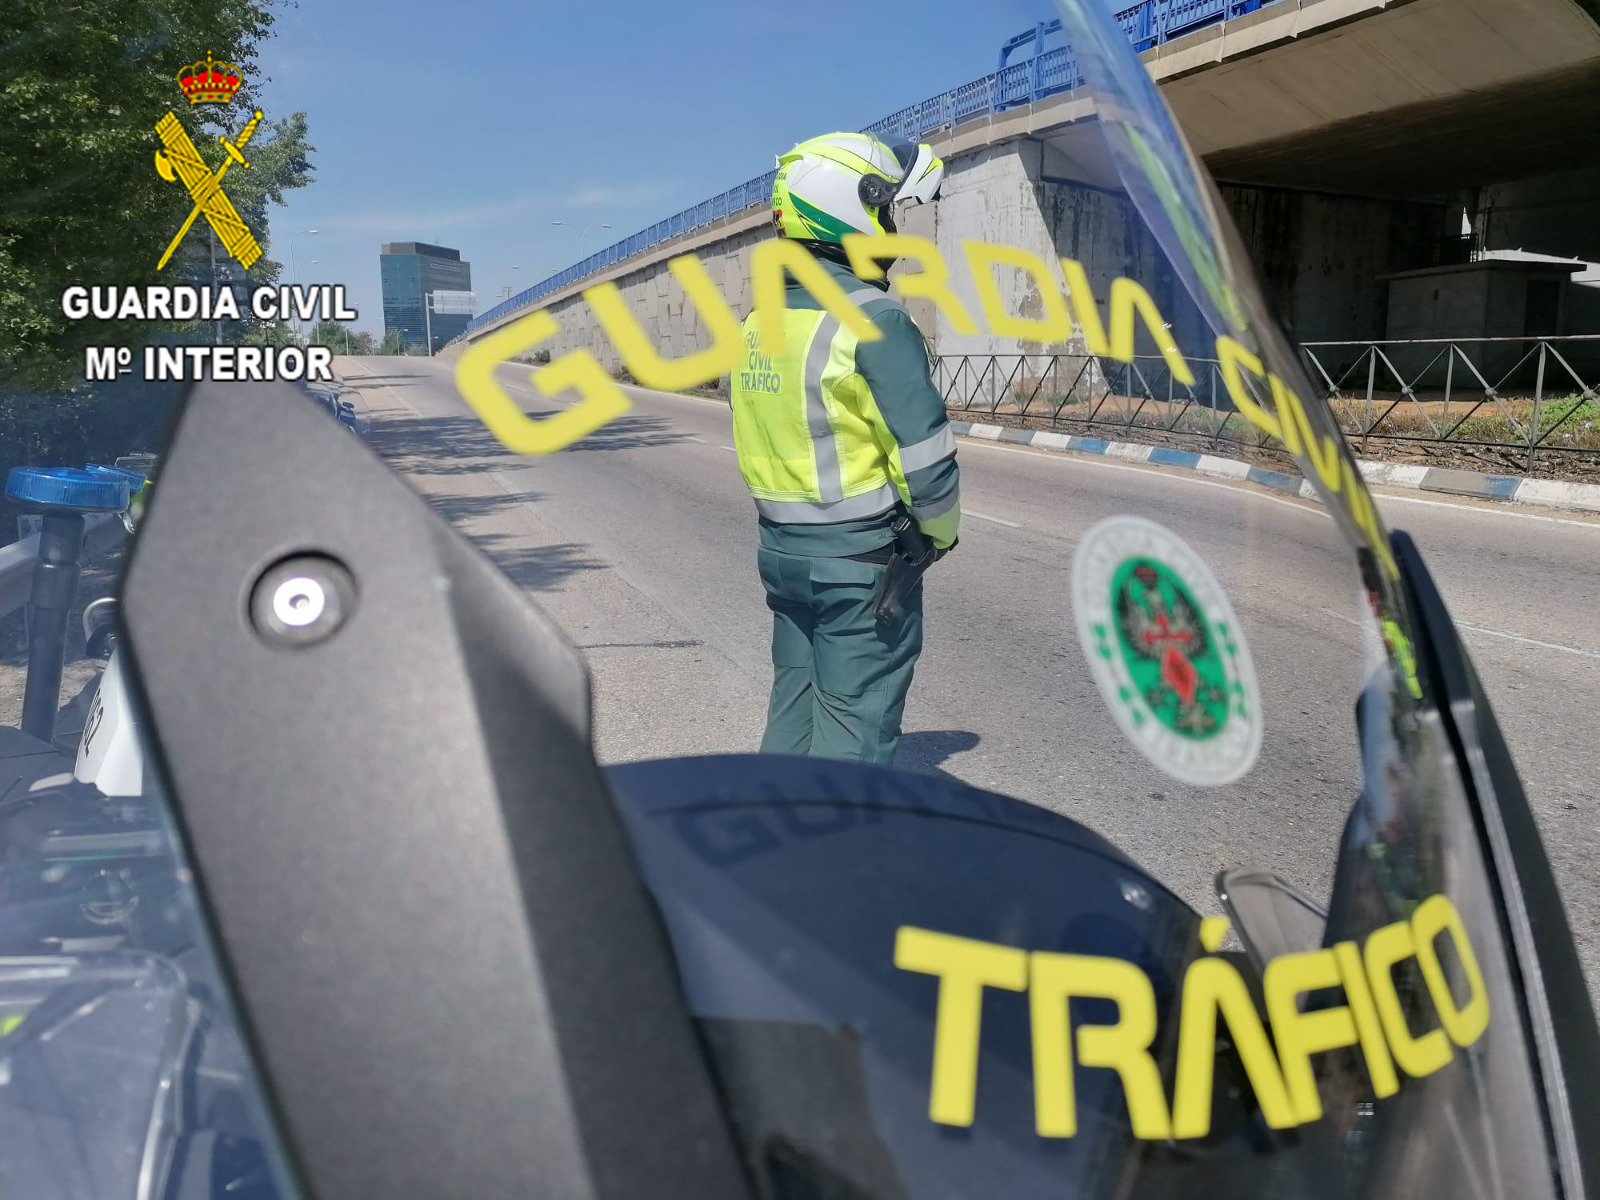 Guardia Civil, vehículo Guardia Civil, Guardia Civil de Tráfico.